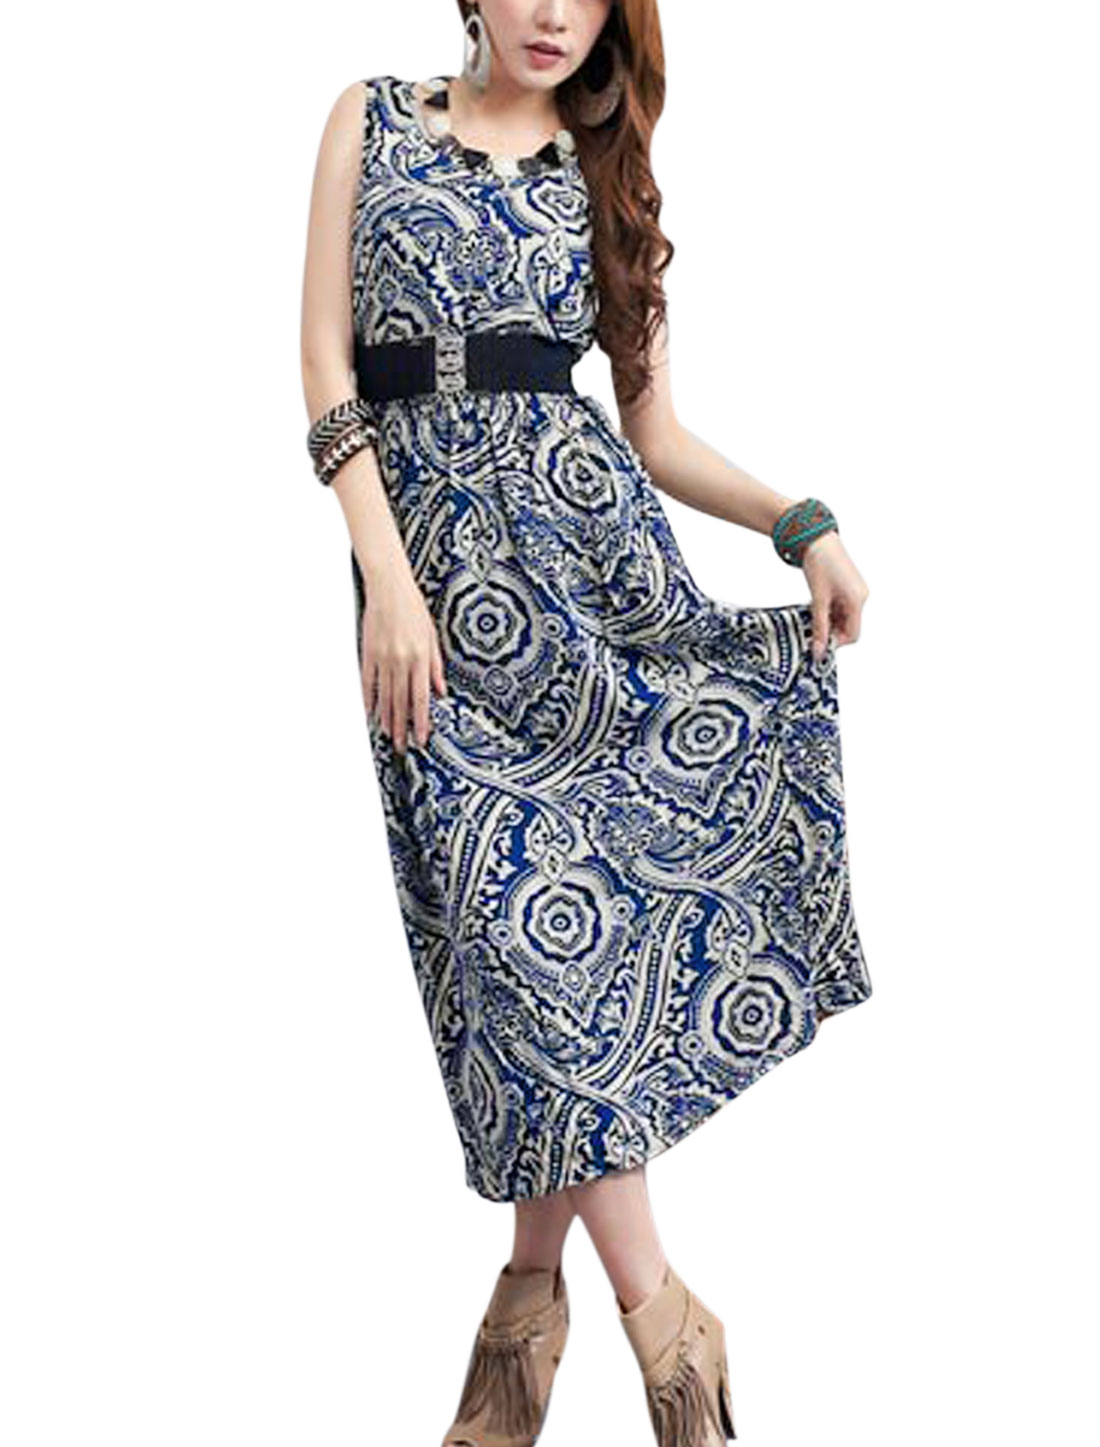 Lady Casual Sleeveless Novelty Prints Mid Calf Unlined Dress w Belt Blue M